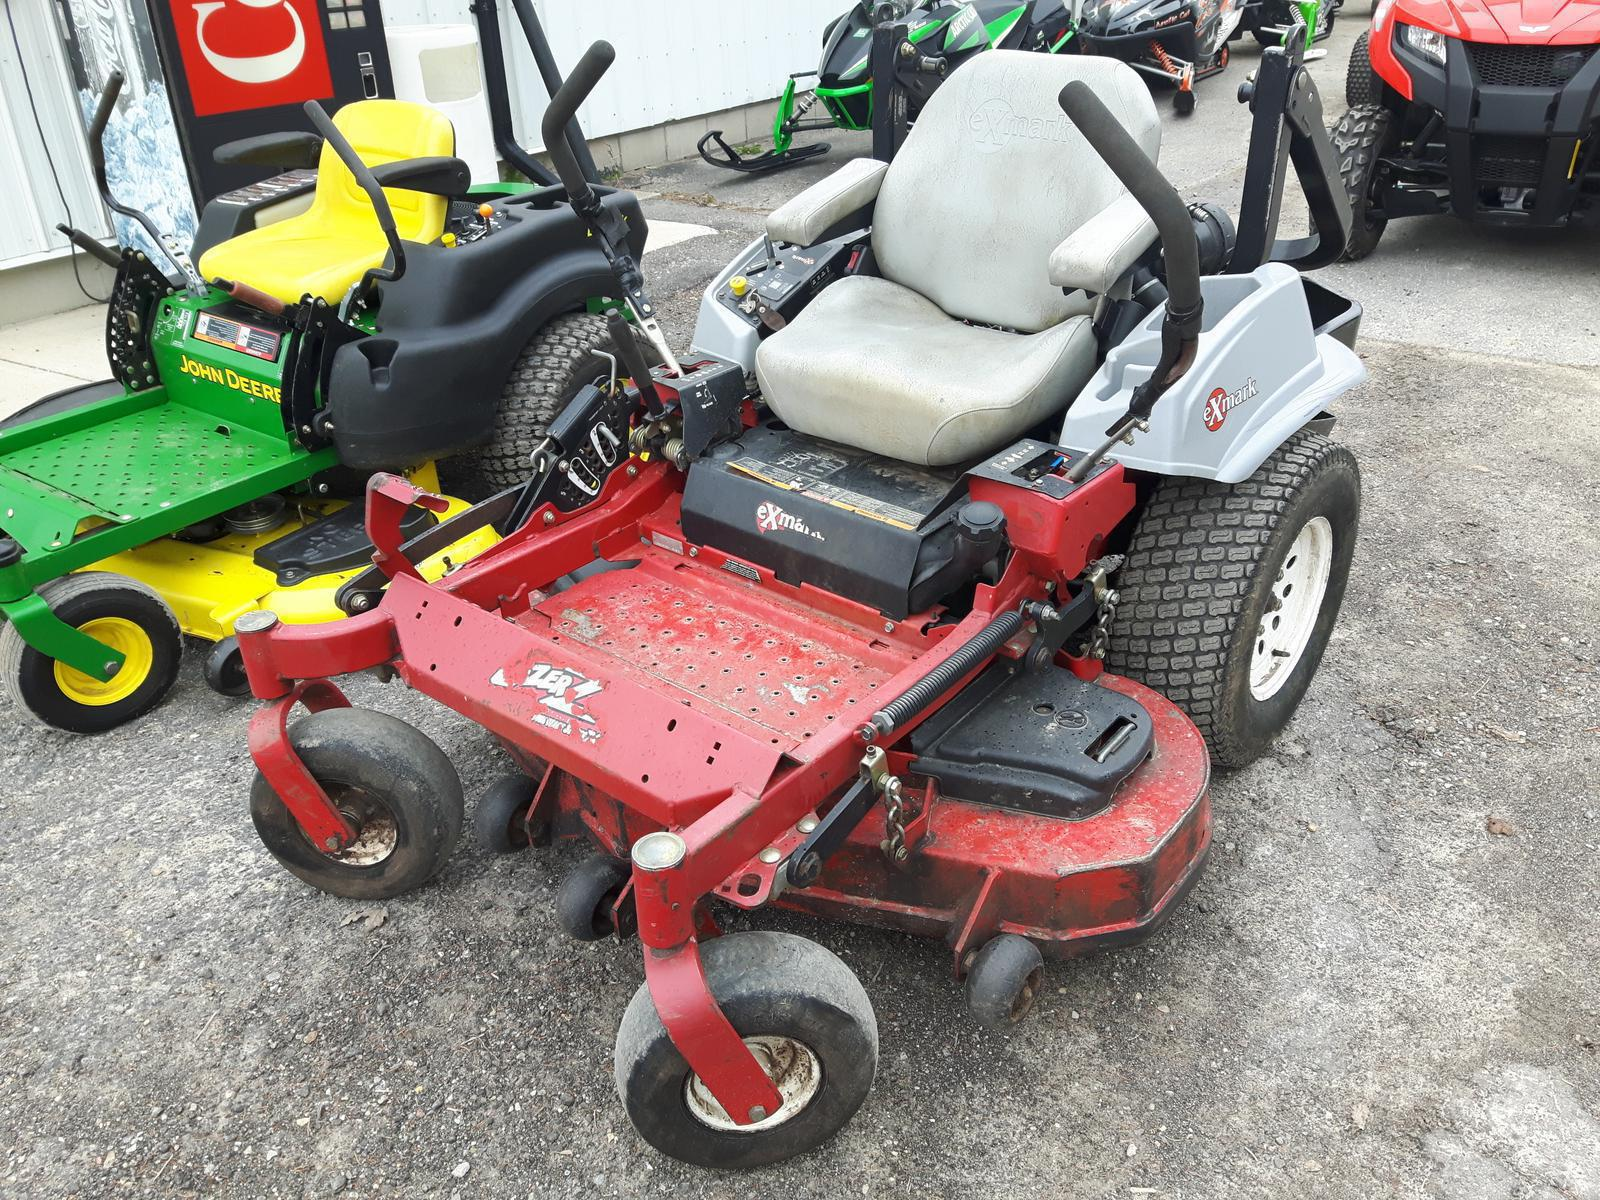 Inventory from Cub Cadet and Exmark B & K Tire & Battery